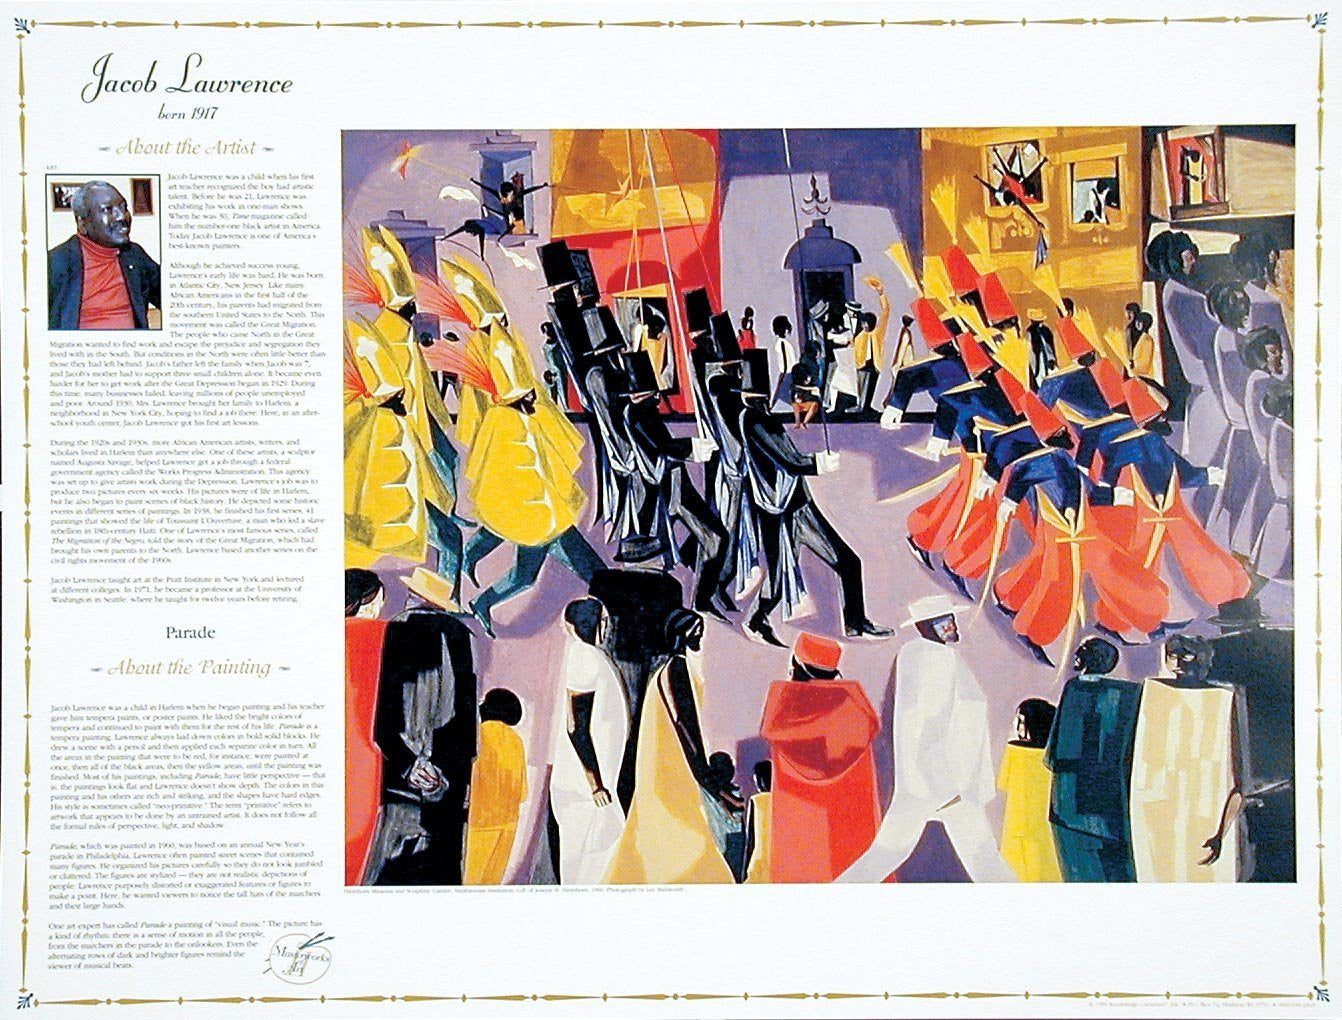 Masterworks of Art: Jacob Lawrence by Knowledge Unlimited